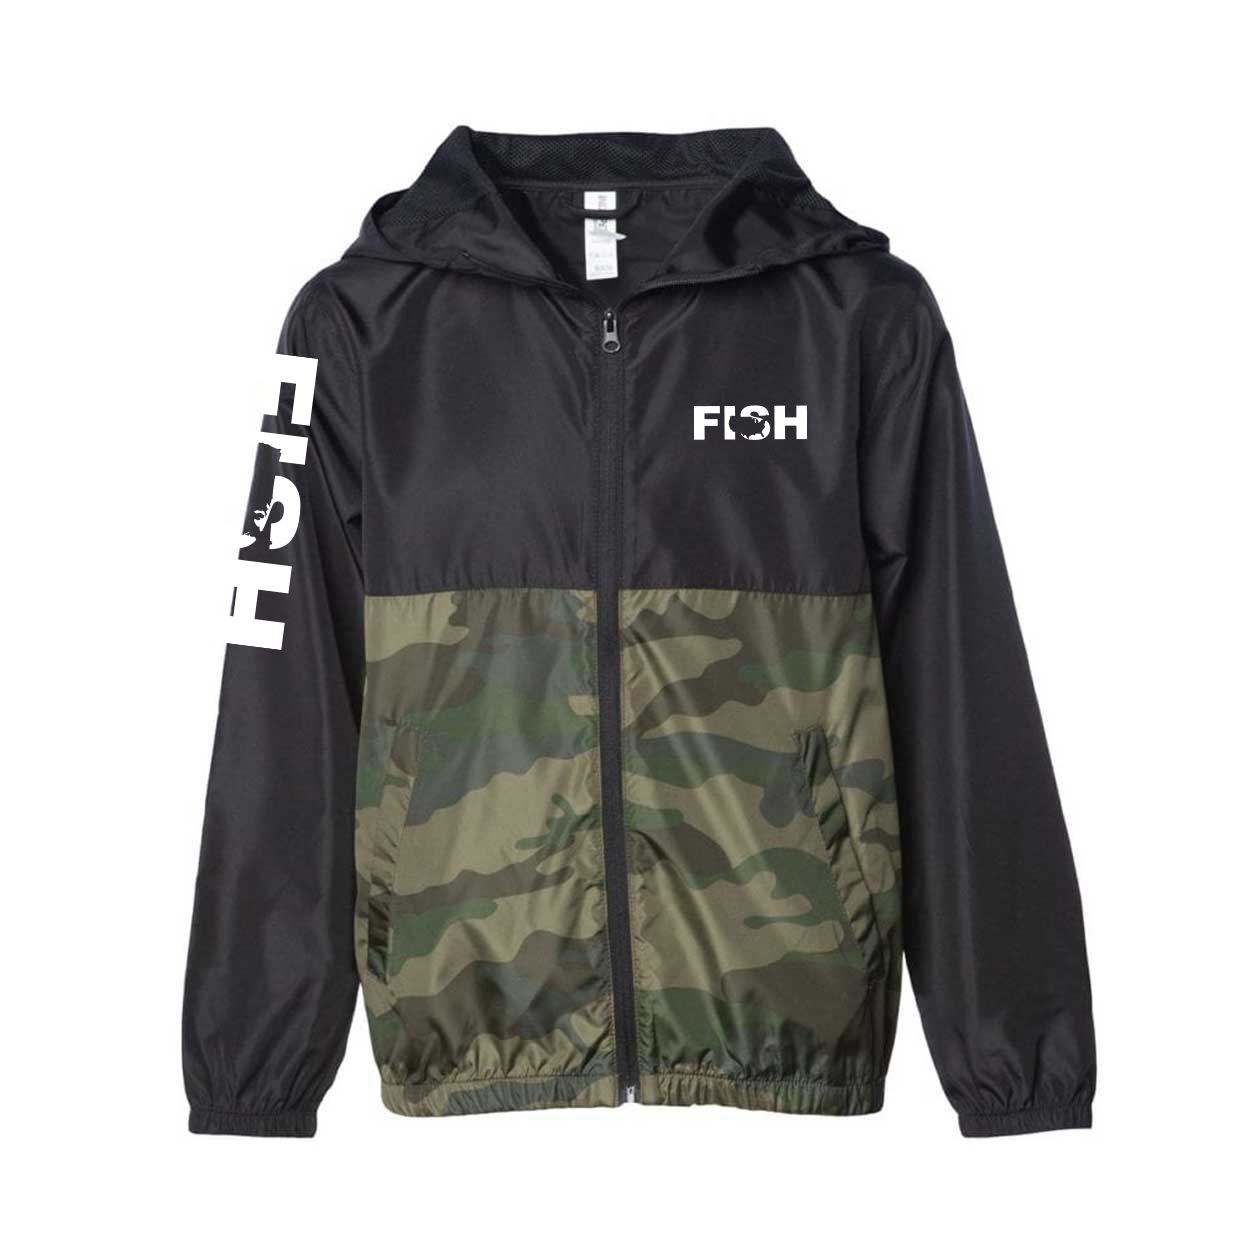 Fish United States Classic Youth Lightweight Windbreaker Black/Forest Camo (White Logo)